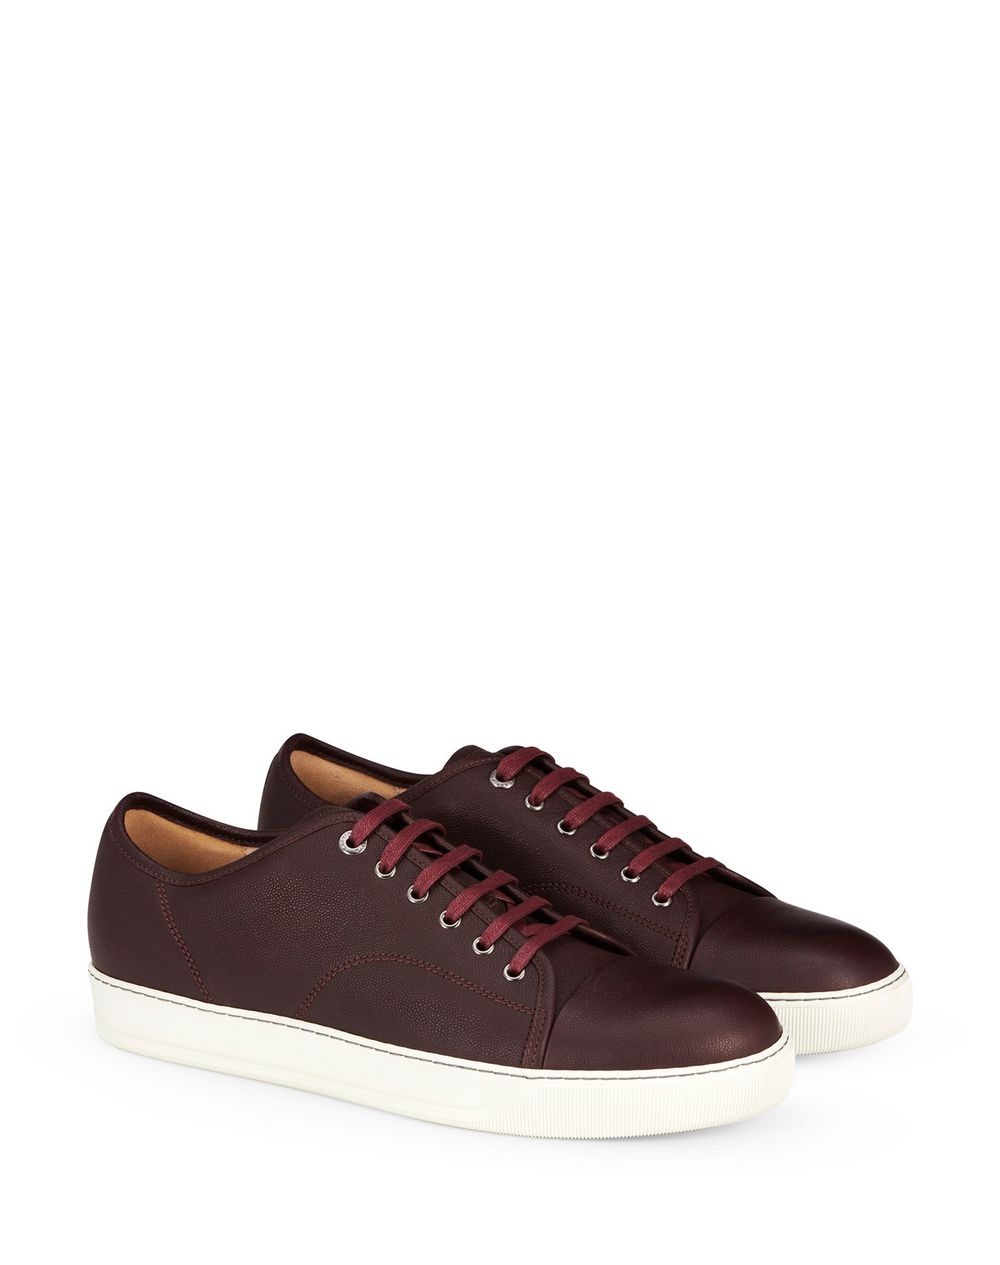 DBB1 GRAINED LEATHER TRAINERS - Lanvin